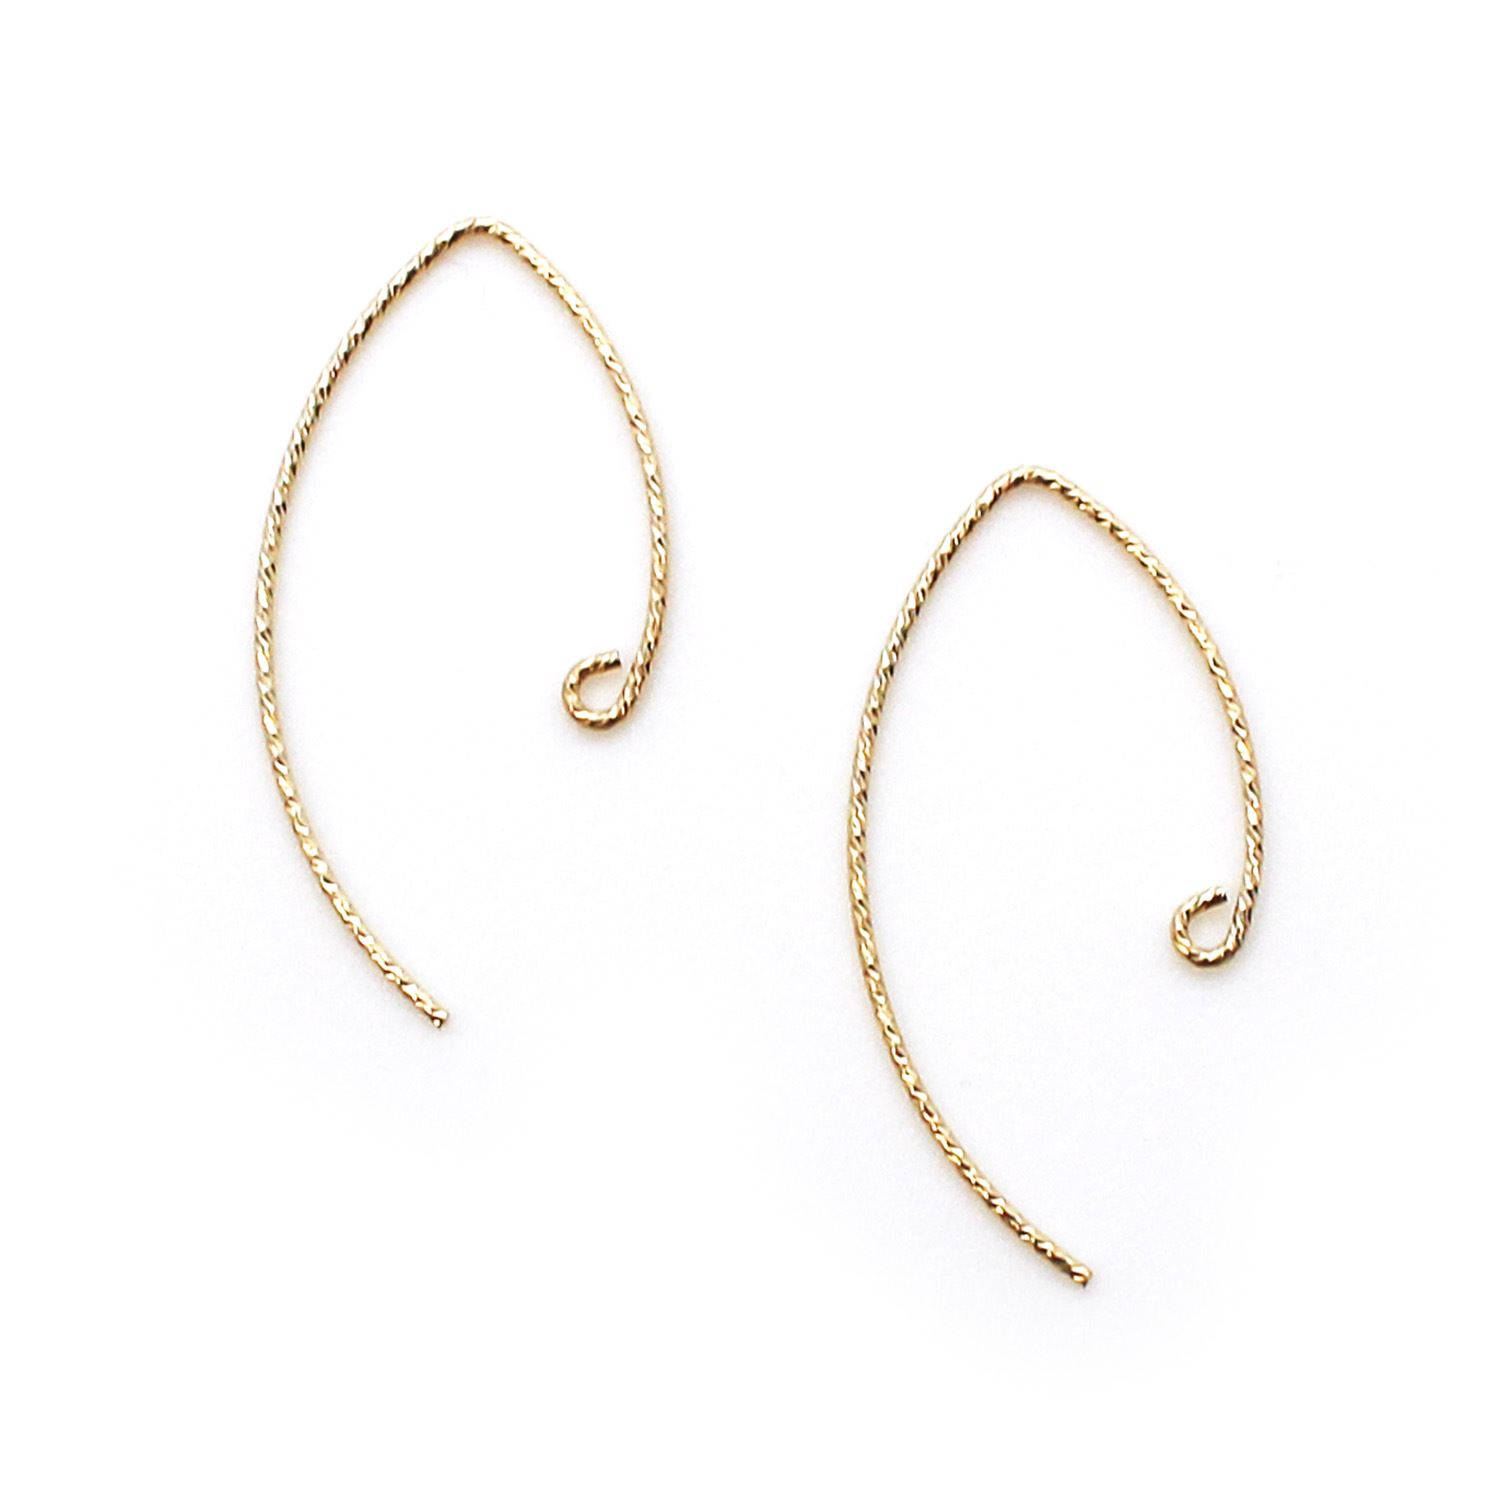 1/20 14K Gold Filled Earwires - Sparkle V Shape Ear Wires - Marquise Ear Wires (1 pair)